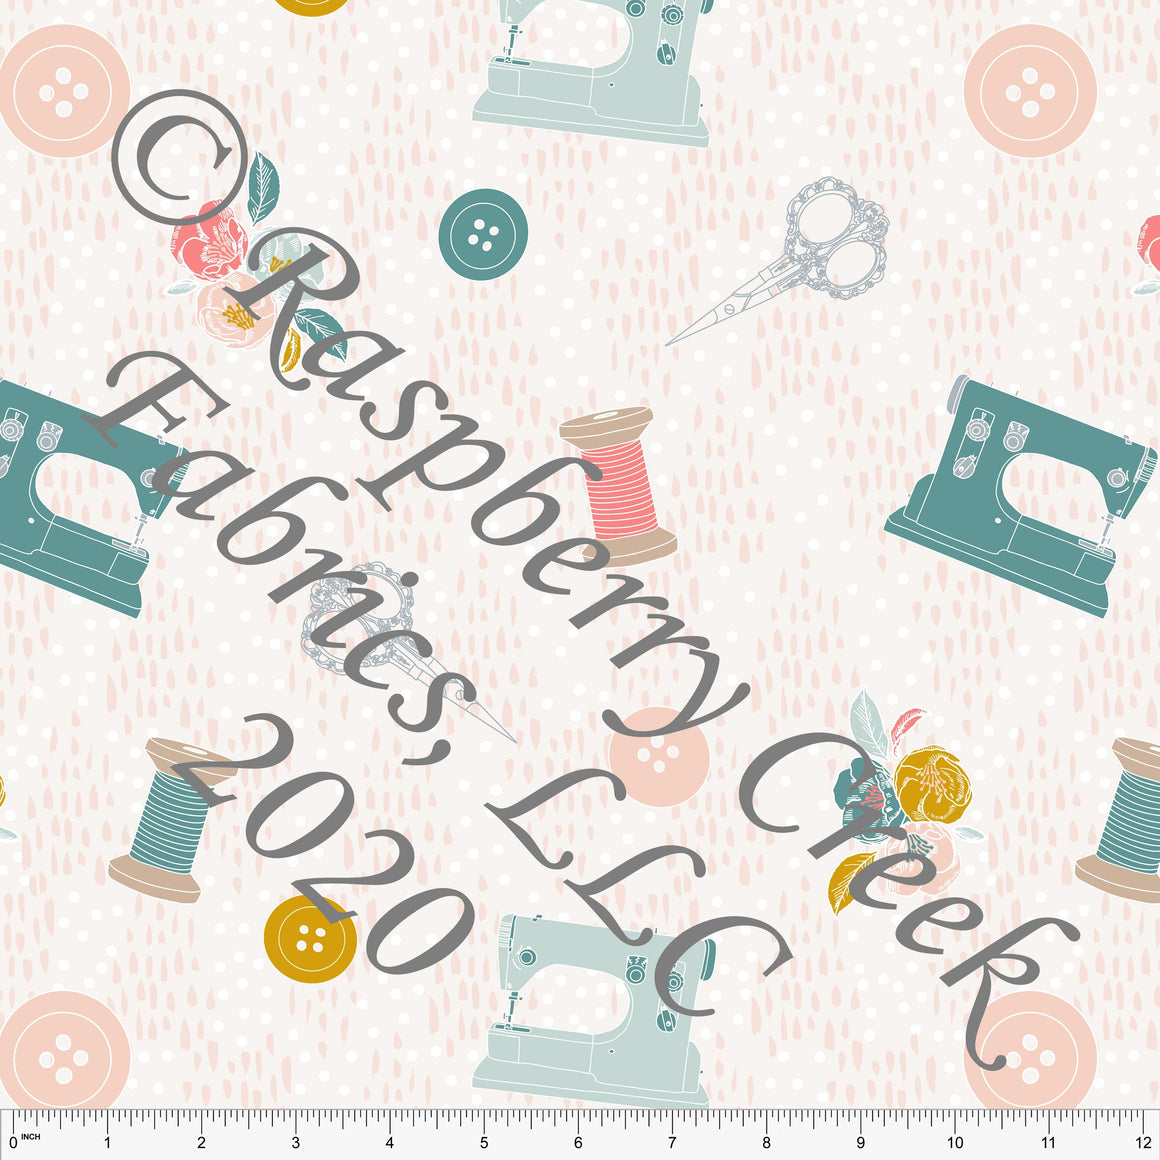 Salmon Dusty Pink Mustard Grey and Bright Teal Tossed Sewing Notions Print Double Brushed Poly Knit Fabric, By Kimberly Henrie for CLUB Fabrics - Raspberry Creek Fabrics